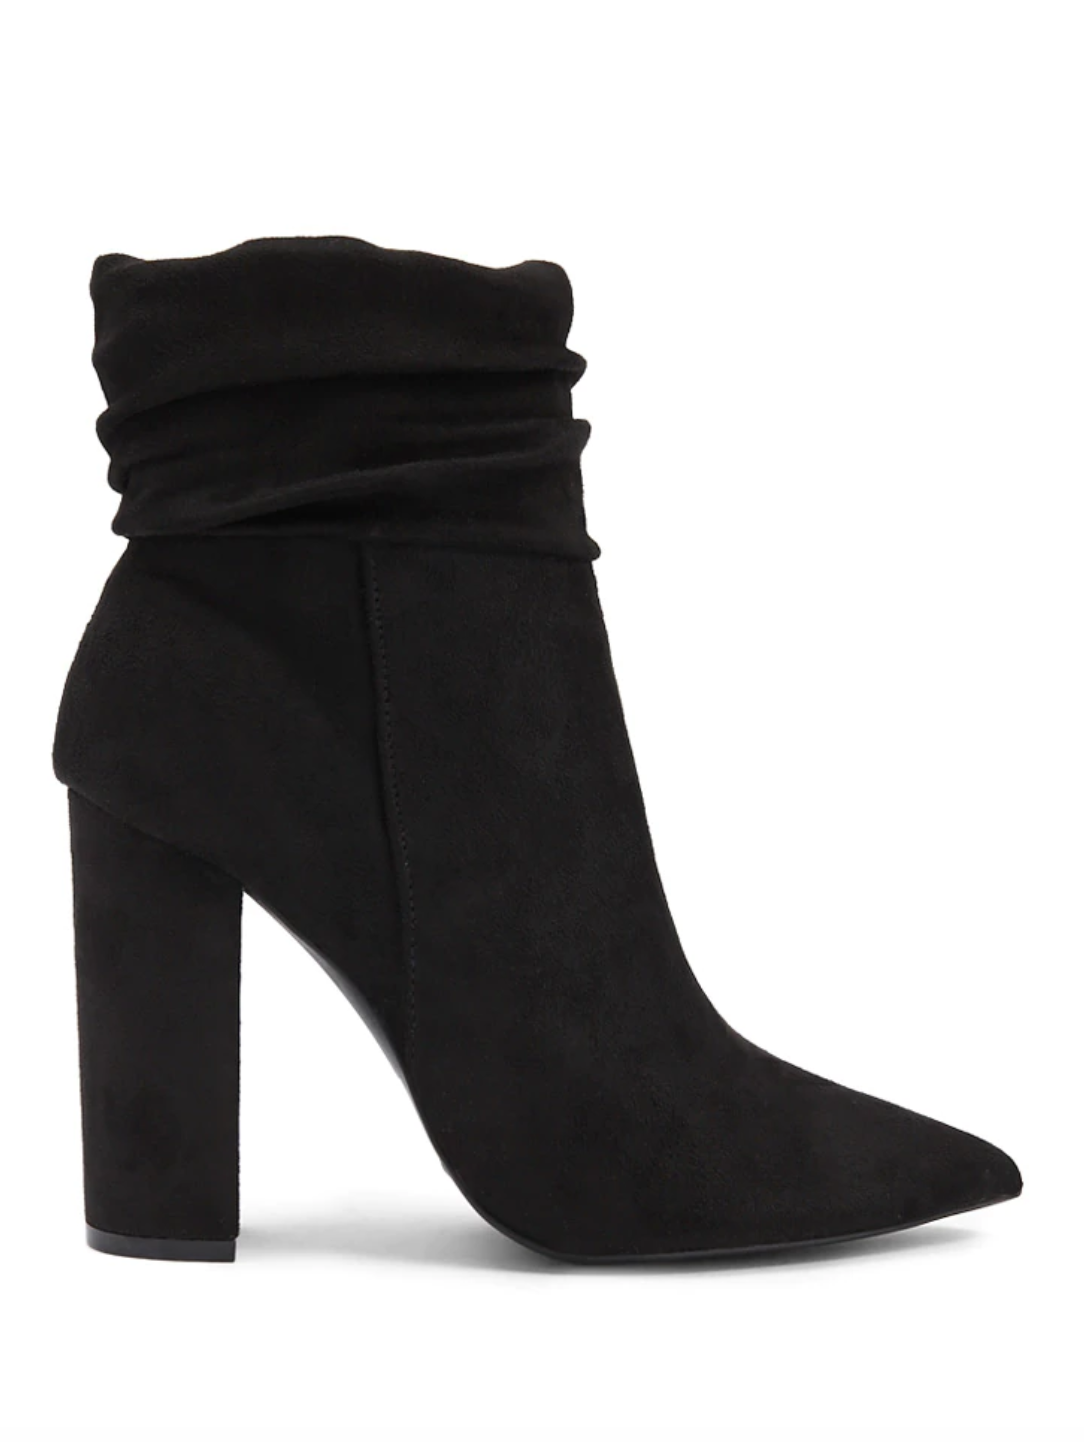 Qupid Slouchy Boots